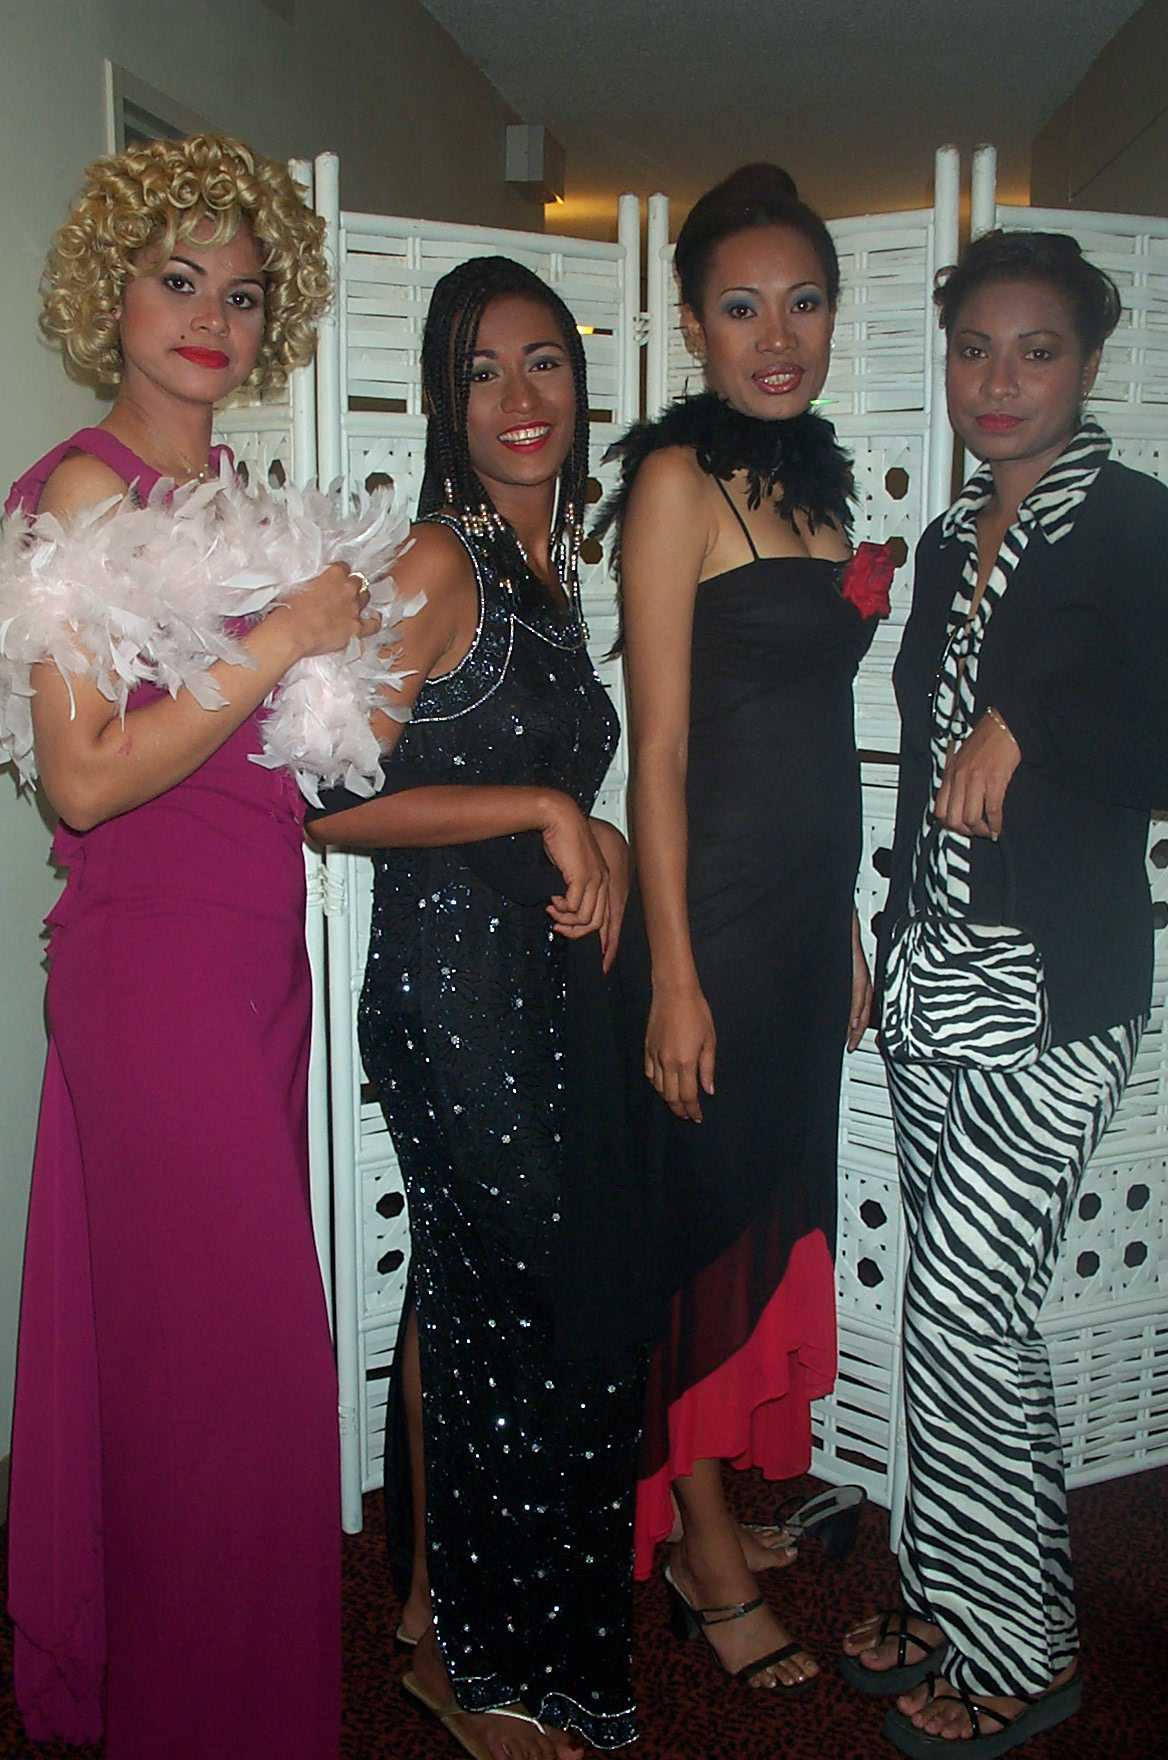 Models @ the IFF Fashion Show